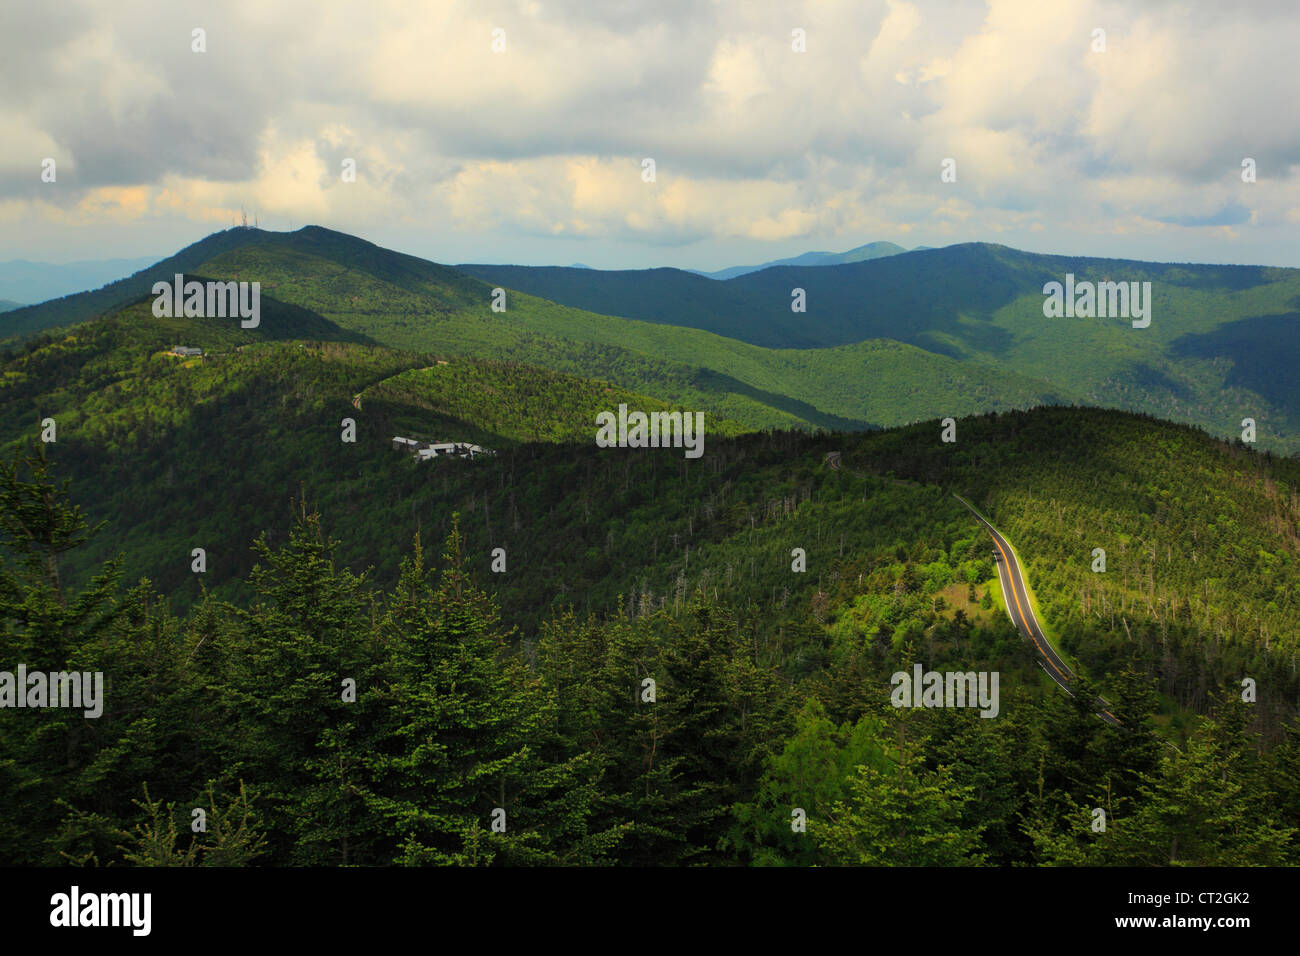 Mt. Mitchell State Park Entrance, Blue Ridge Parkway, Black Mountain, North Carolina, USA Stock Photo